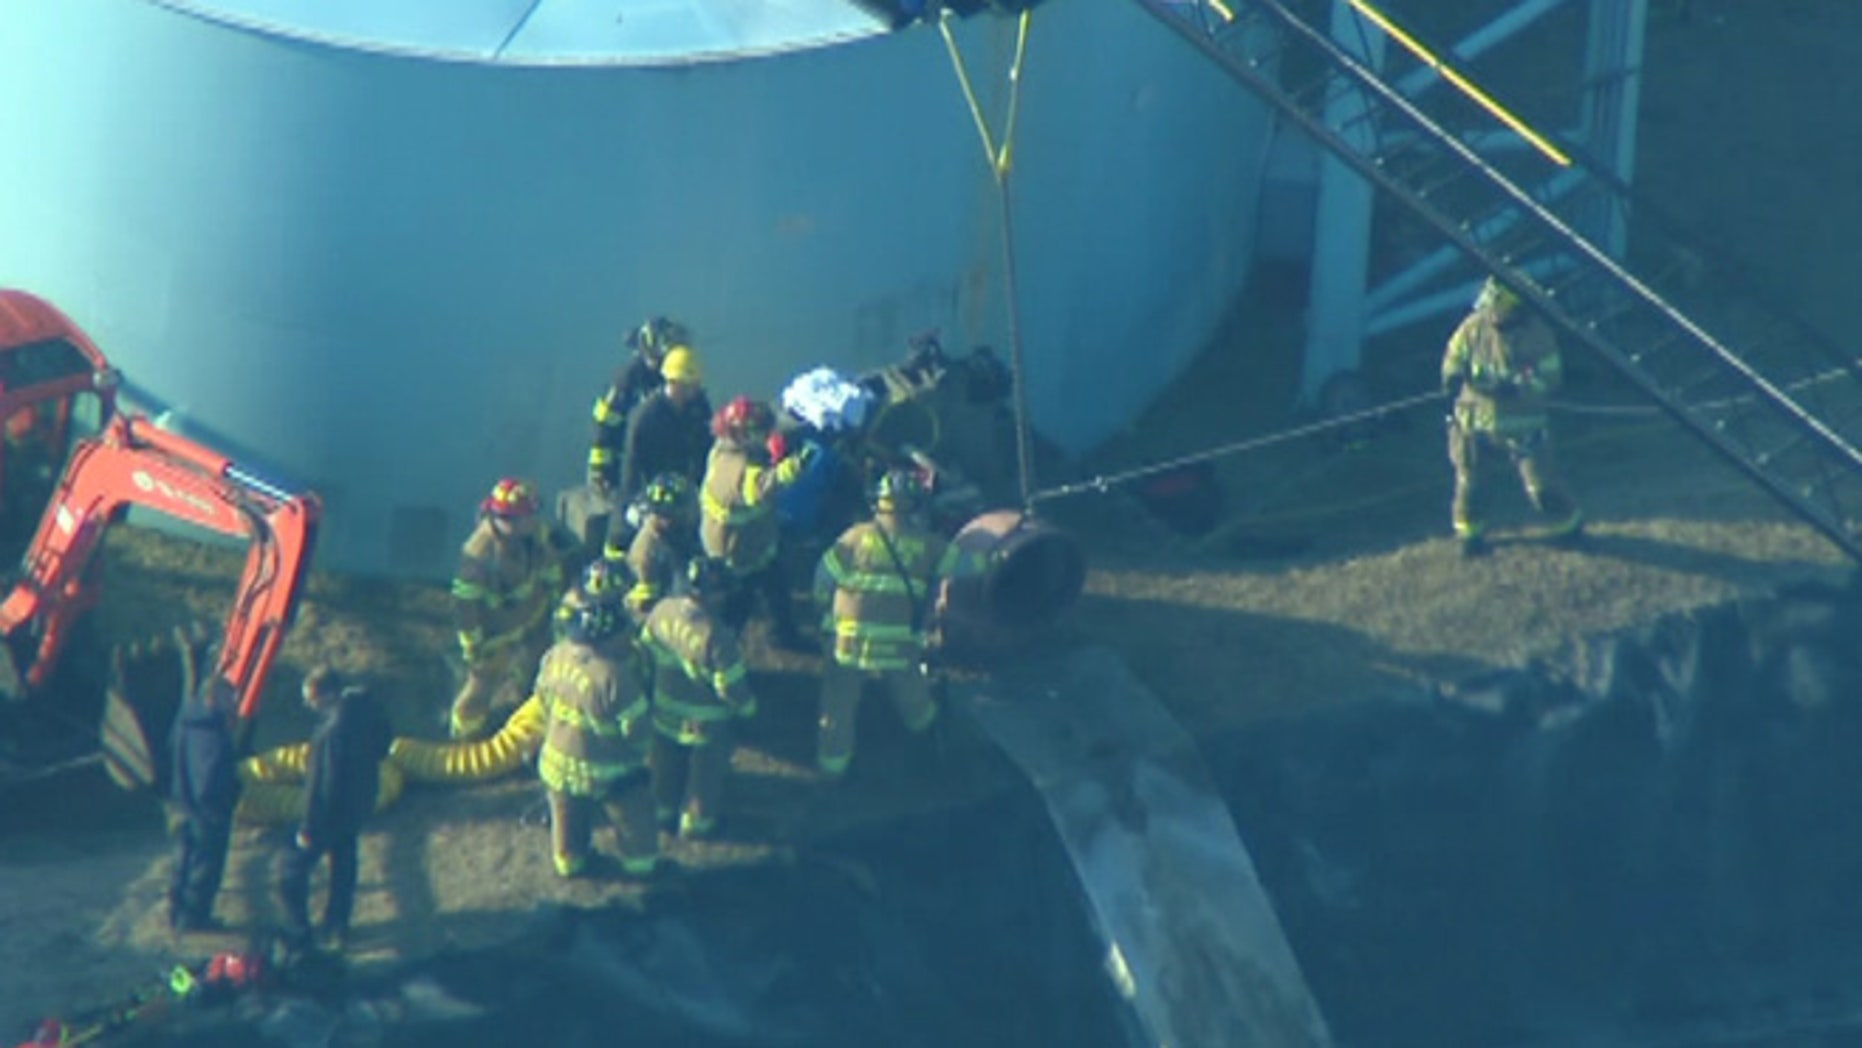 Authorities working to free a person stuck in a pipe at a water facility in Manalapan Township, which is south east of Princeton.